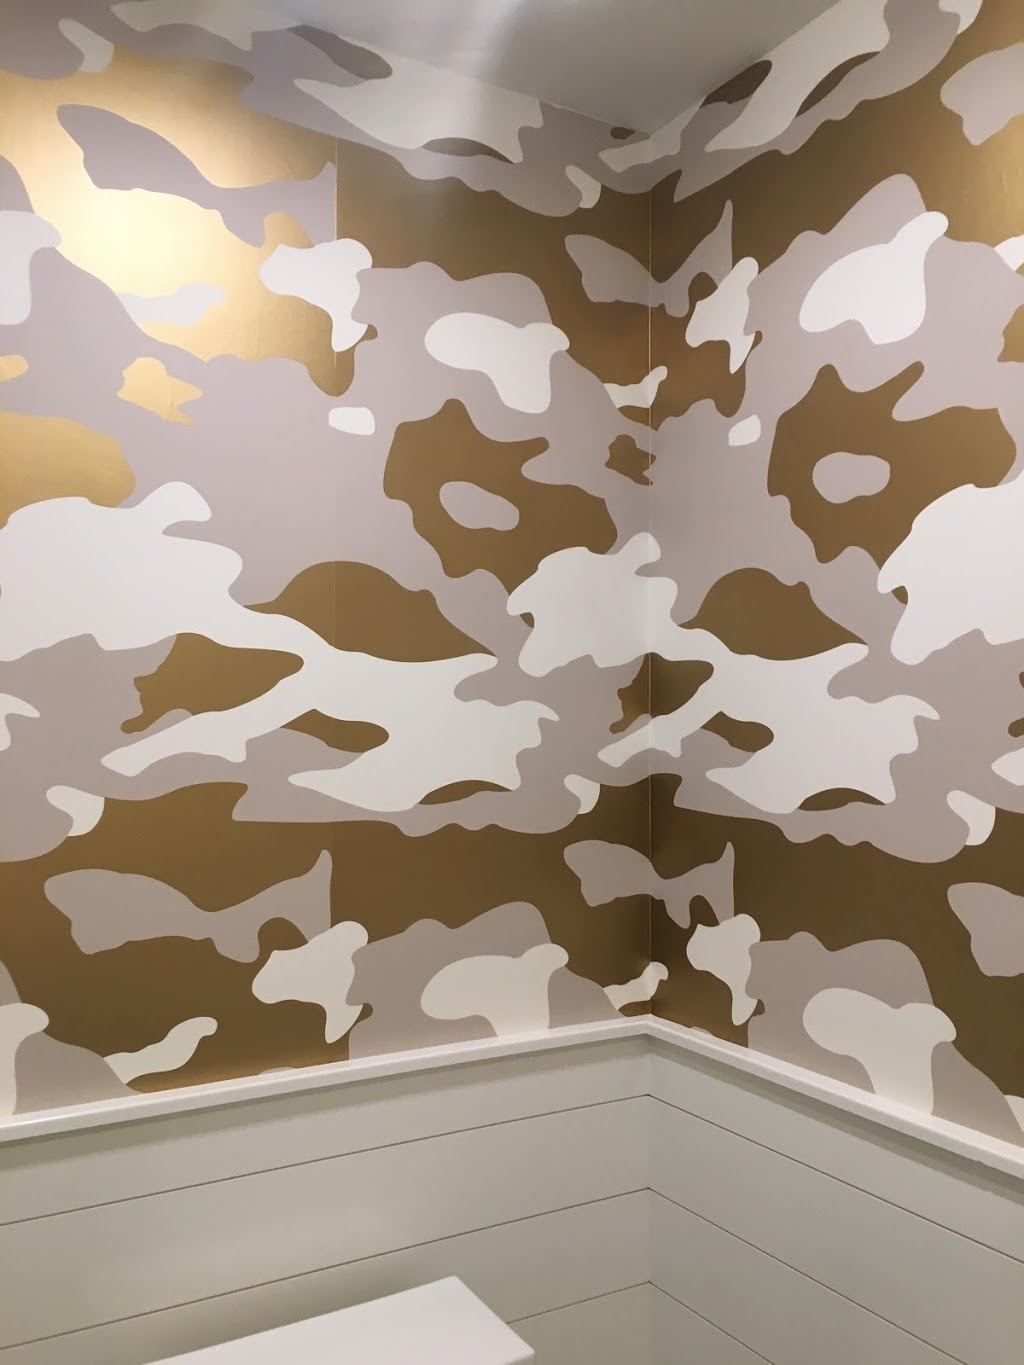 Gail Fishers Wallcovering - home goods store  | Photo 4 of 10 | Address: 1789 E Revere Rd, Fresno, CA 93720, USA | Phone: (559) 433-0727